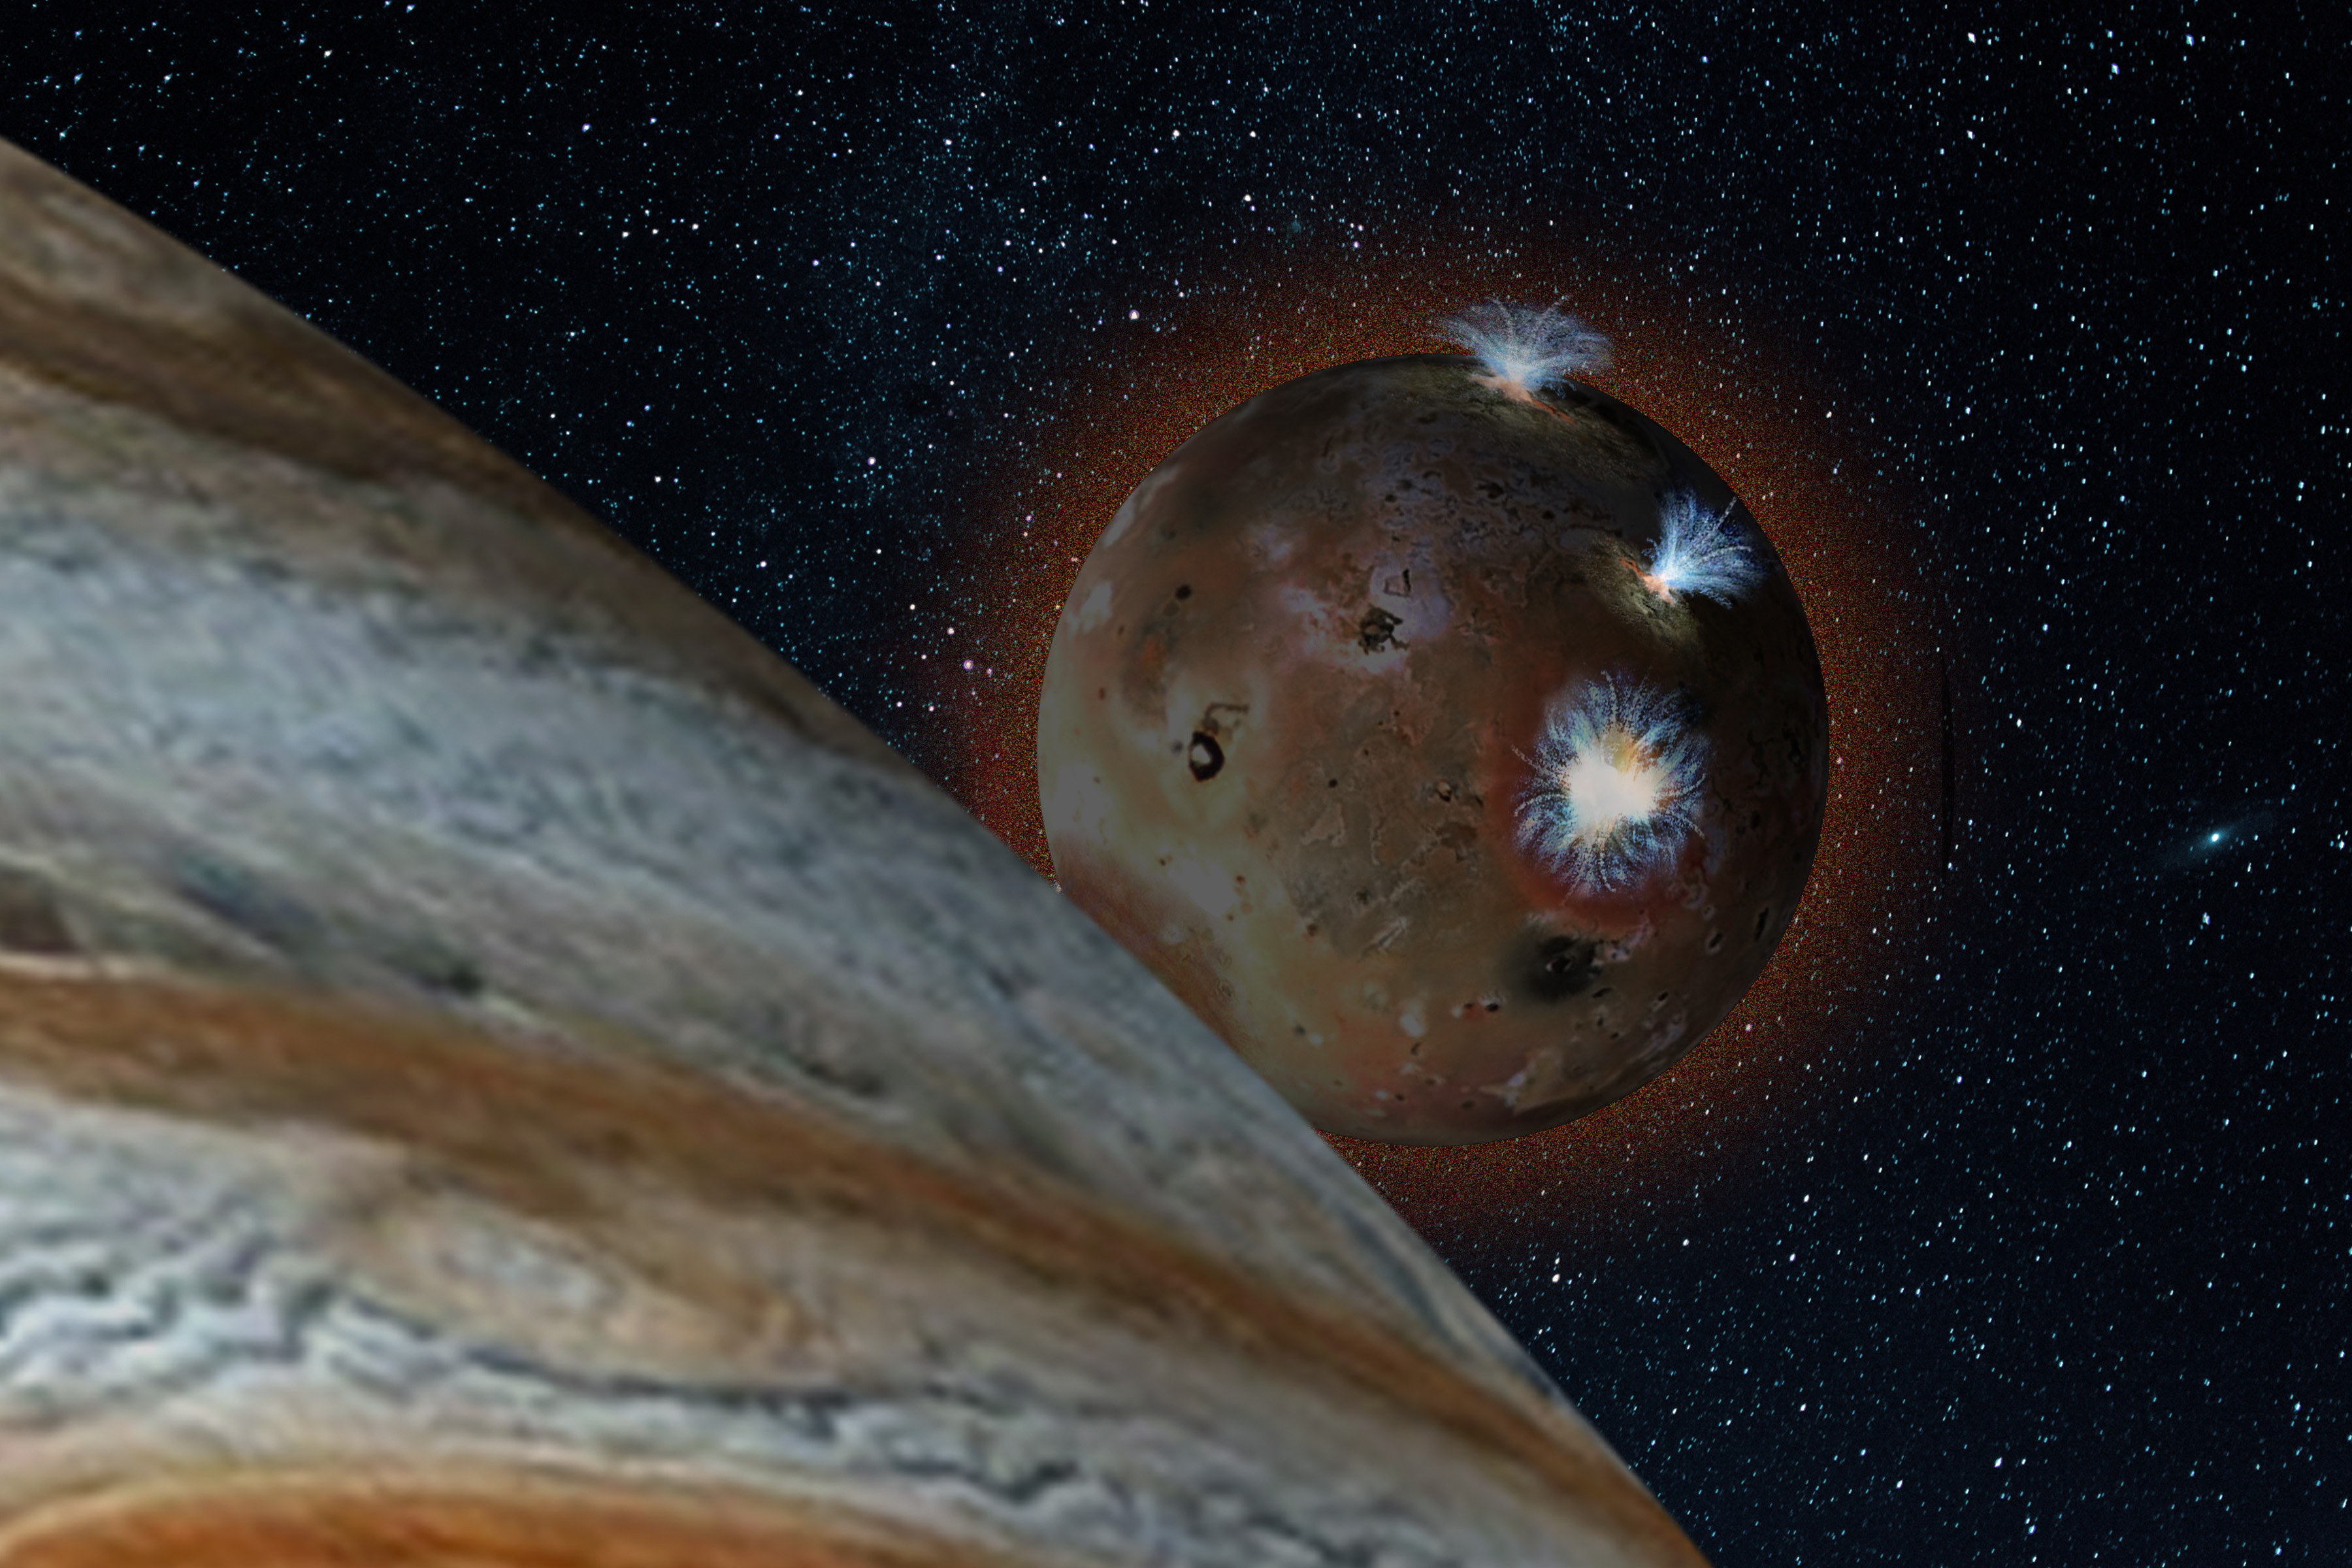 An artist's rendering depicts Io's volcanic plumes creating the atmosphere in sunlight.